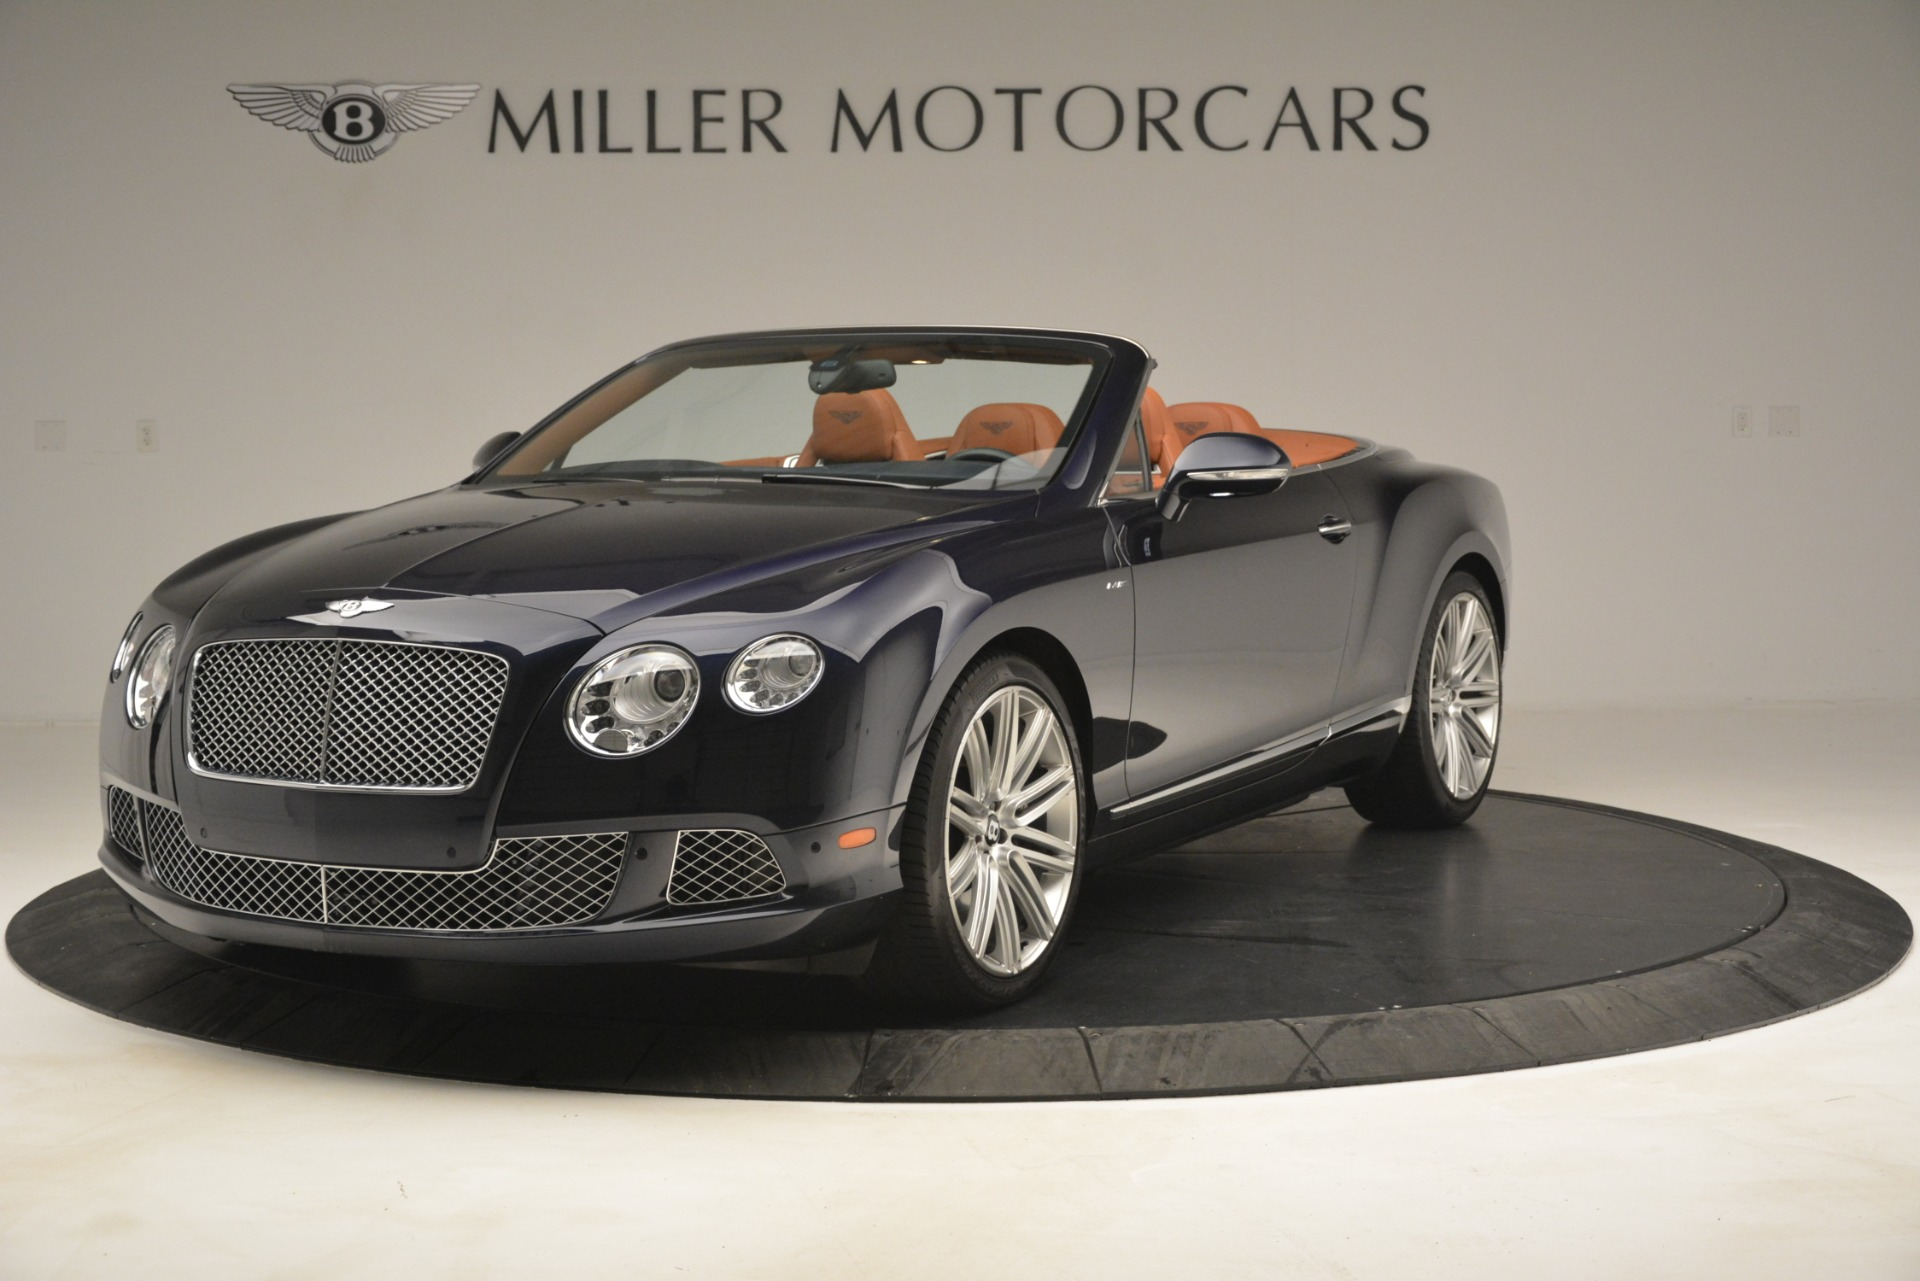 Used 2014 Bentley Continental GT Speed for sale Sold at Bentley Greenwich in Greenwich CT 06830 1